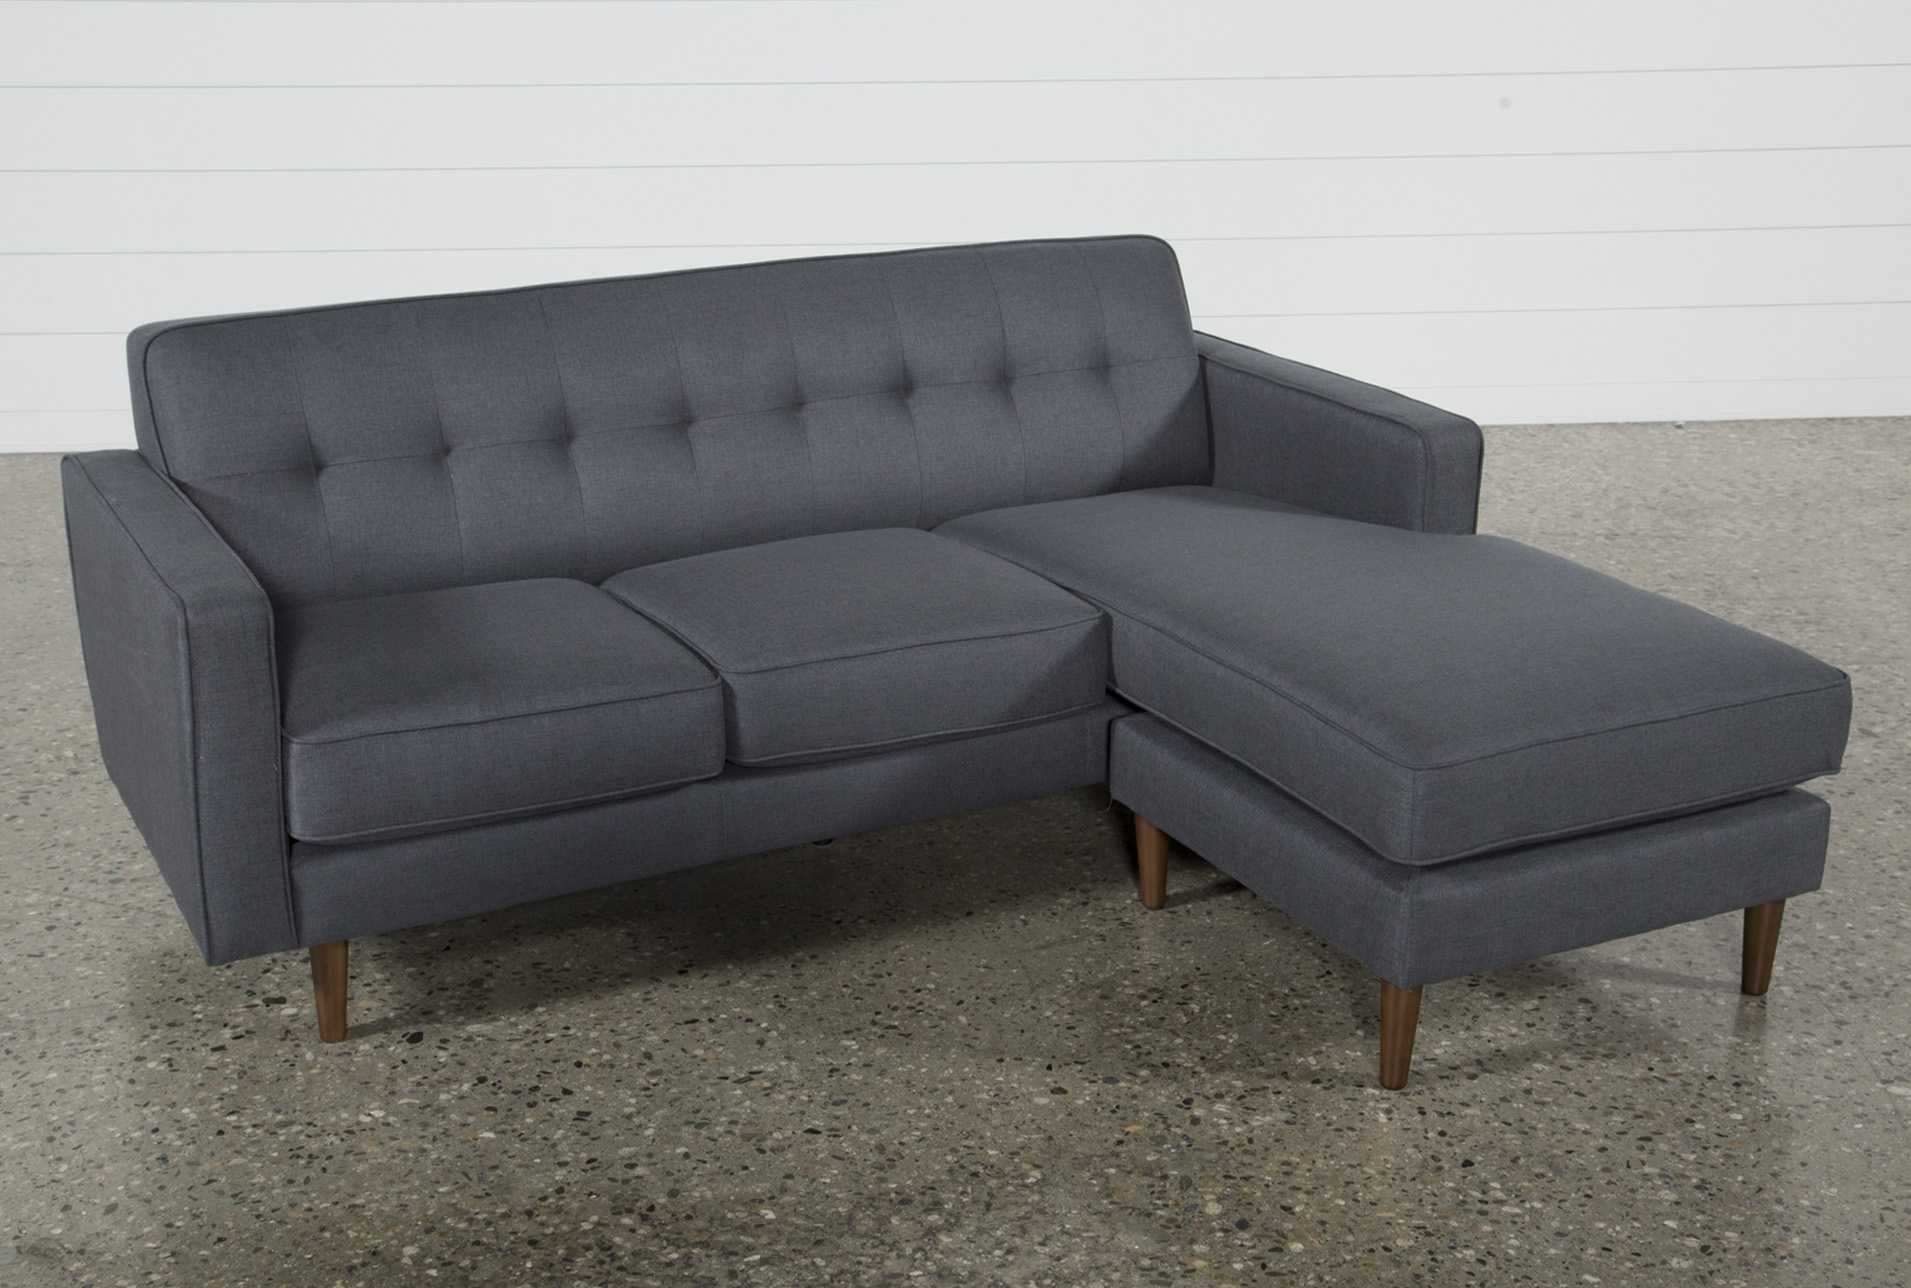 London Dark Grey Reversible Sofa Chaise | Products | Pinterest inside London Optical Reversible Sofa Chaise Sectionals (Image 13 of 30)